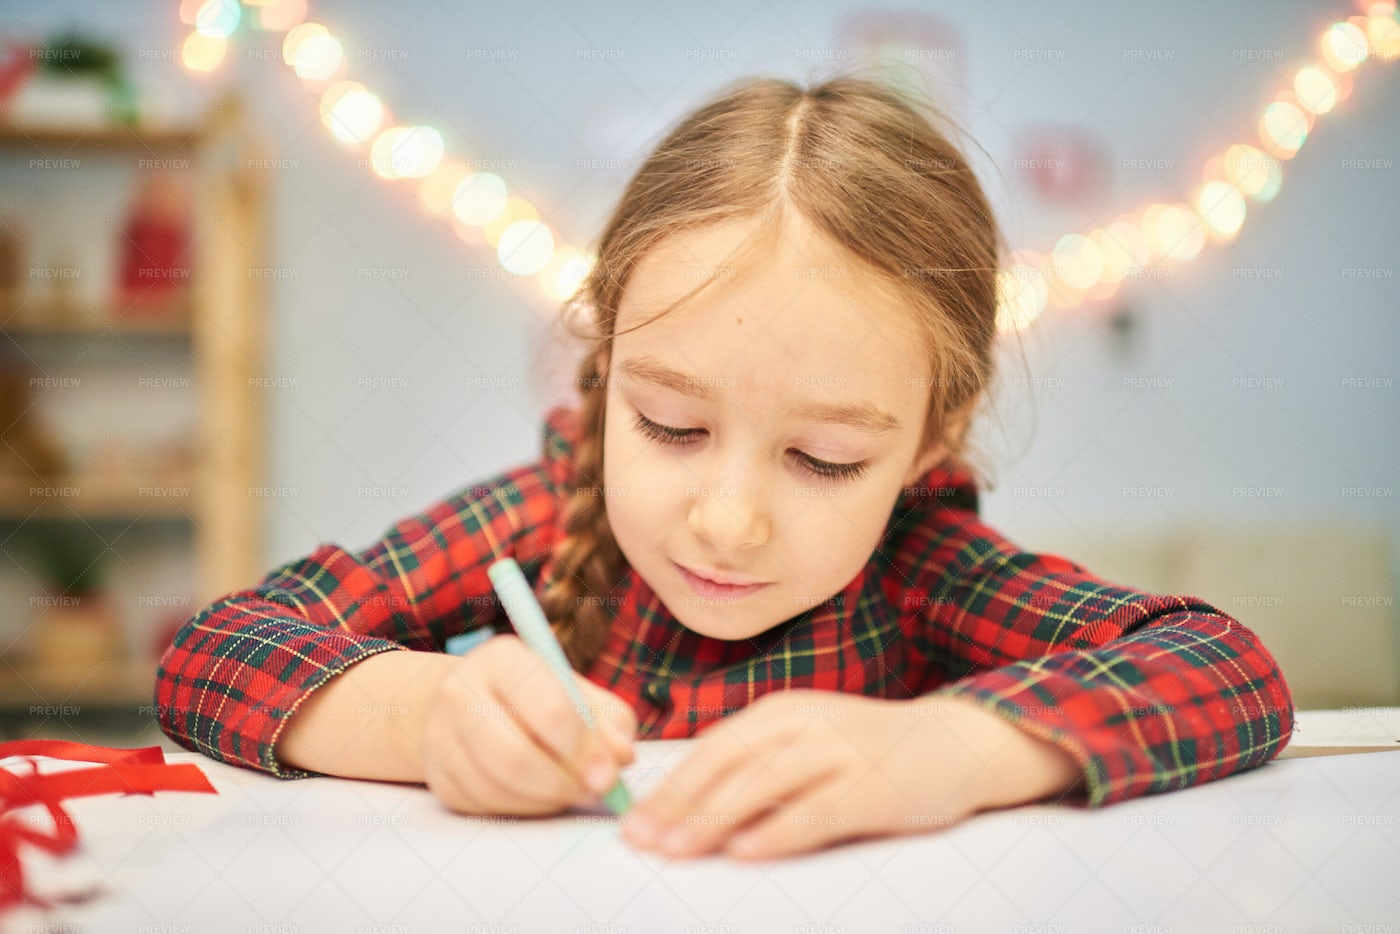 Focused On Drawing Christmas Card: Stock Photos